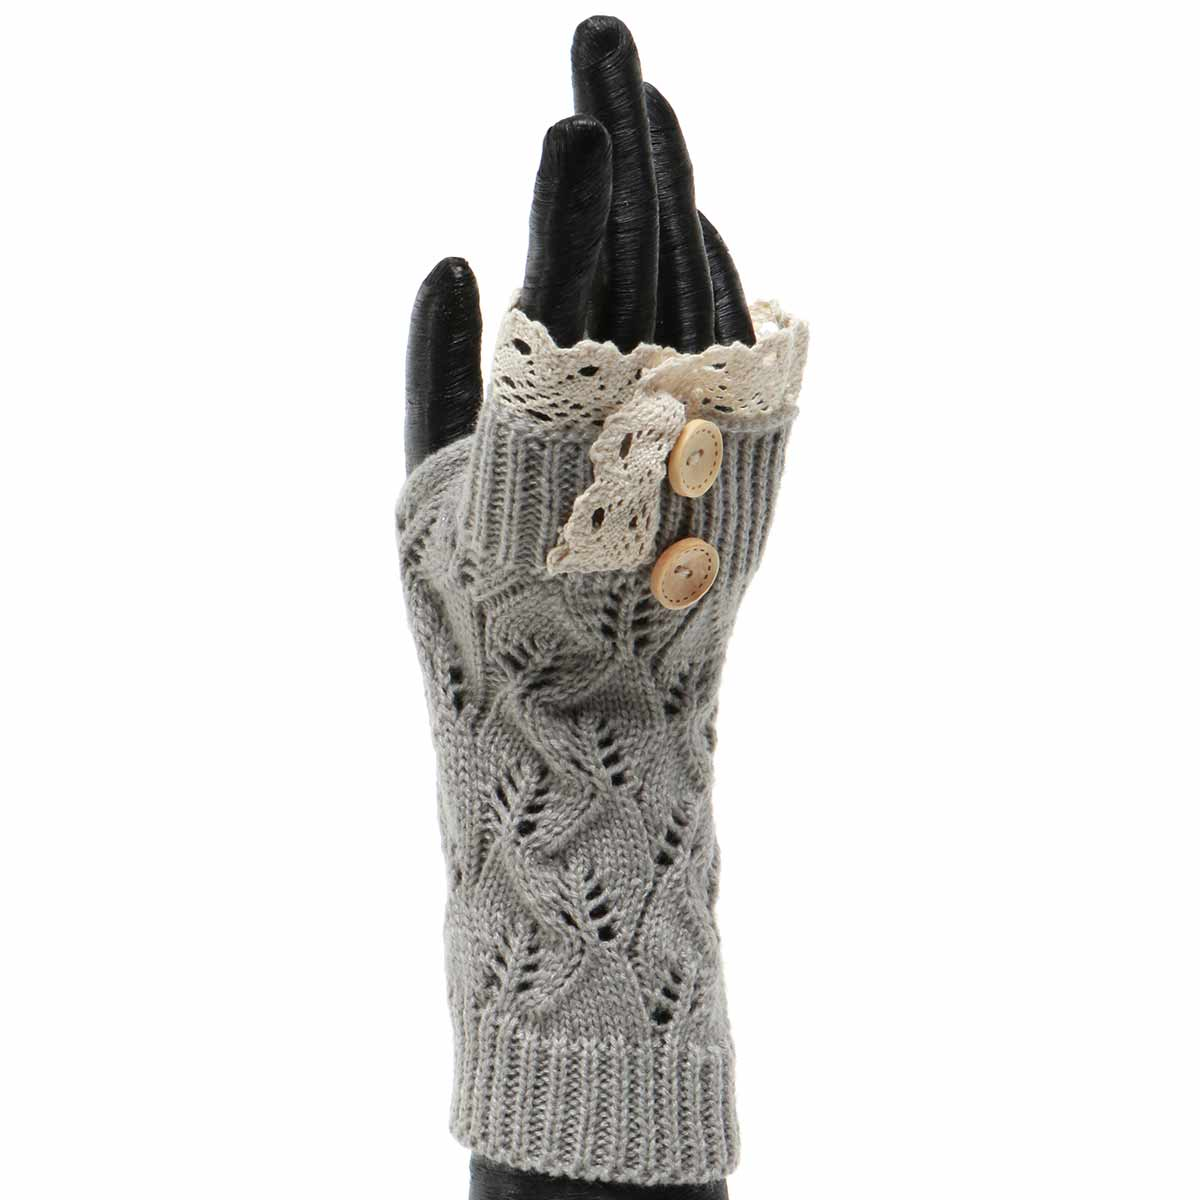 GREY KNIT FINGERLESS GLOVE WITH LACE AND BUTTONS 50sp